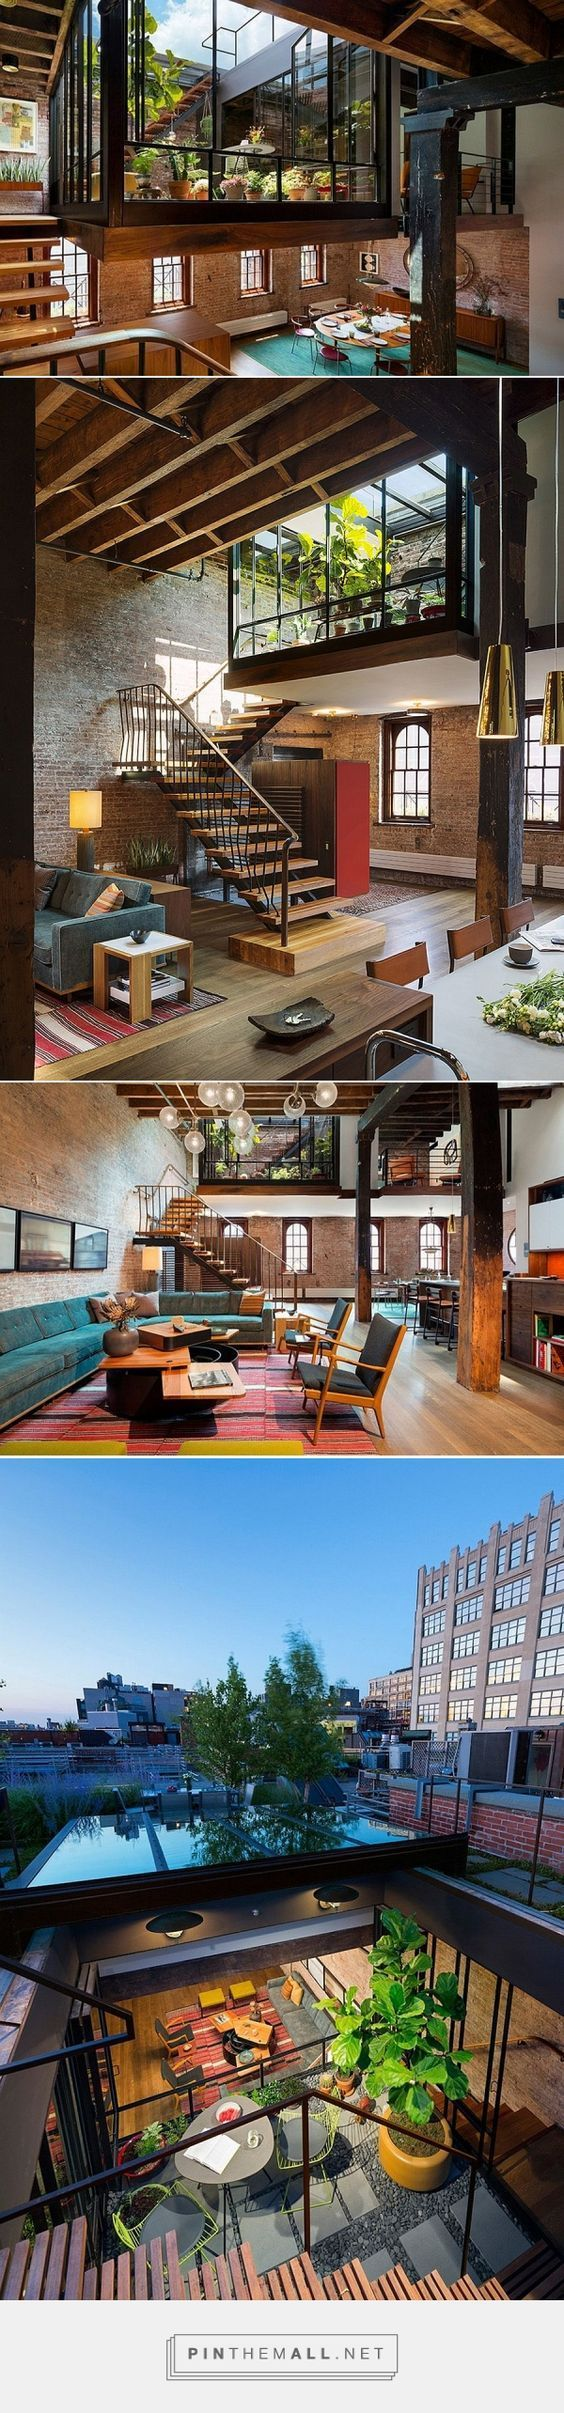 Old Caviar Warehouse Converted into a Sensational NYC Loft - garden space dropped down into the living space - created via http://pinthemall.net::